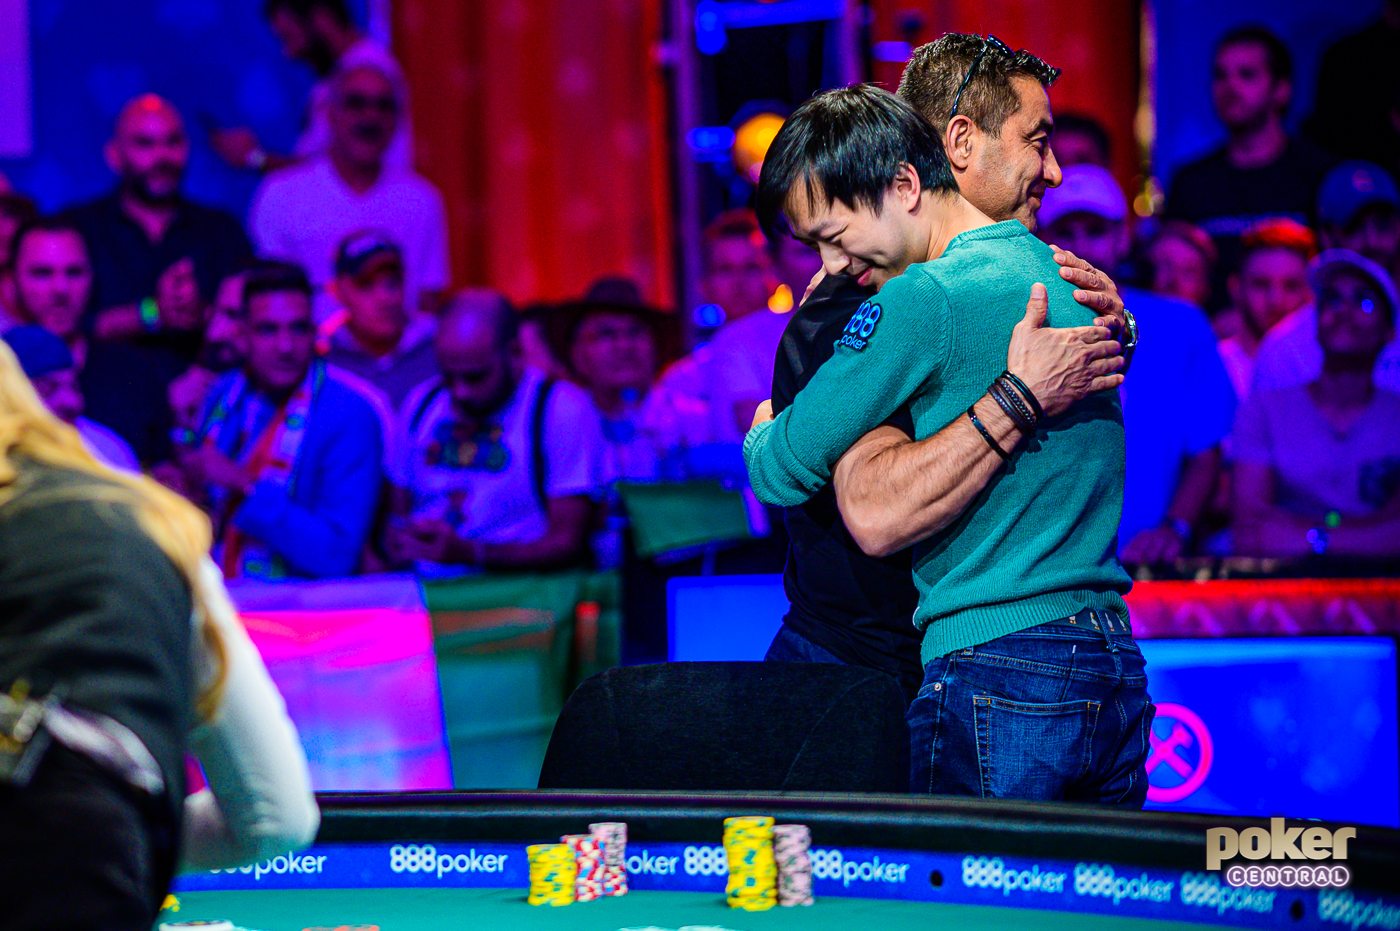 Timothy Su hugs Hossein Ensan after getting eliminated in 8th place for $1,250,000.